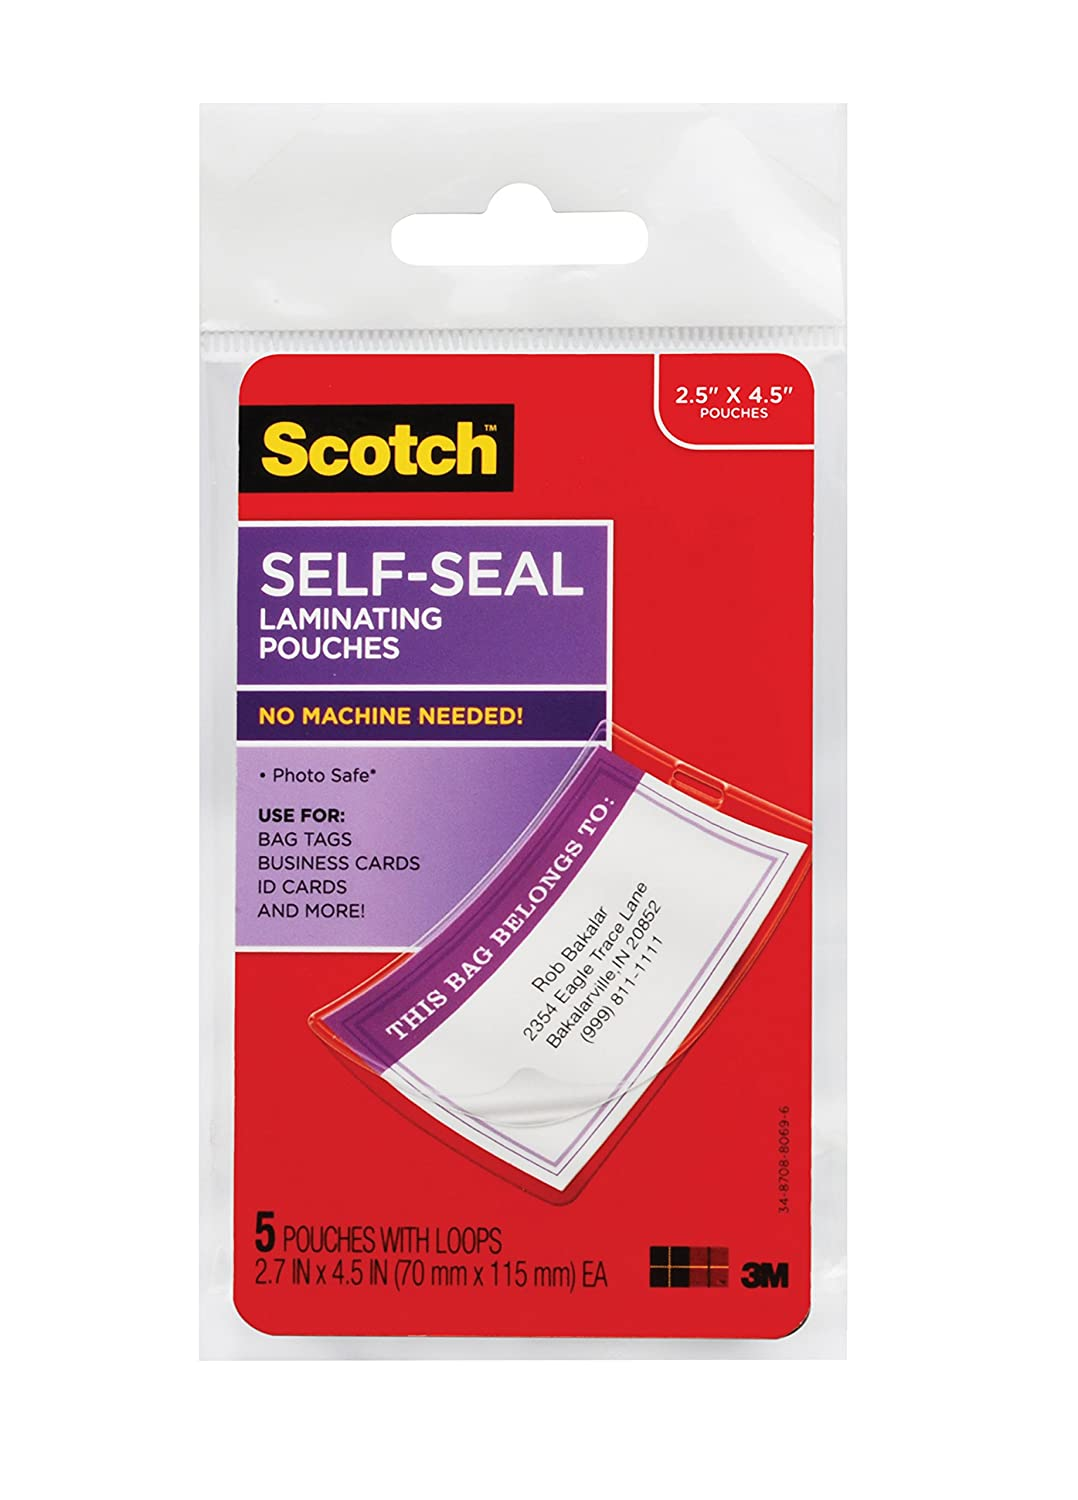 Scotch self sealing laminating pouches bag tags with loops glossy scotch self sealing laminating pouches bag tags with loops glossy 5 pouches ls853 5g amazon office products reheart Images